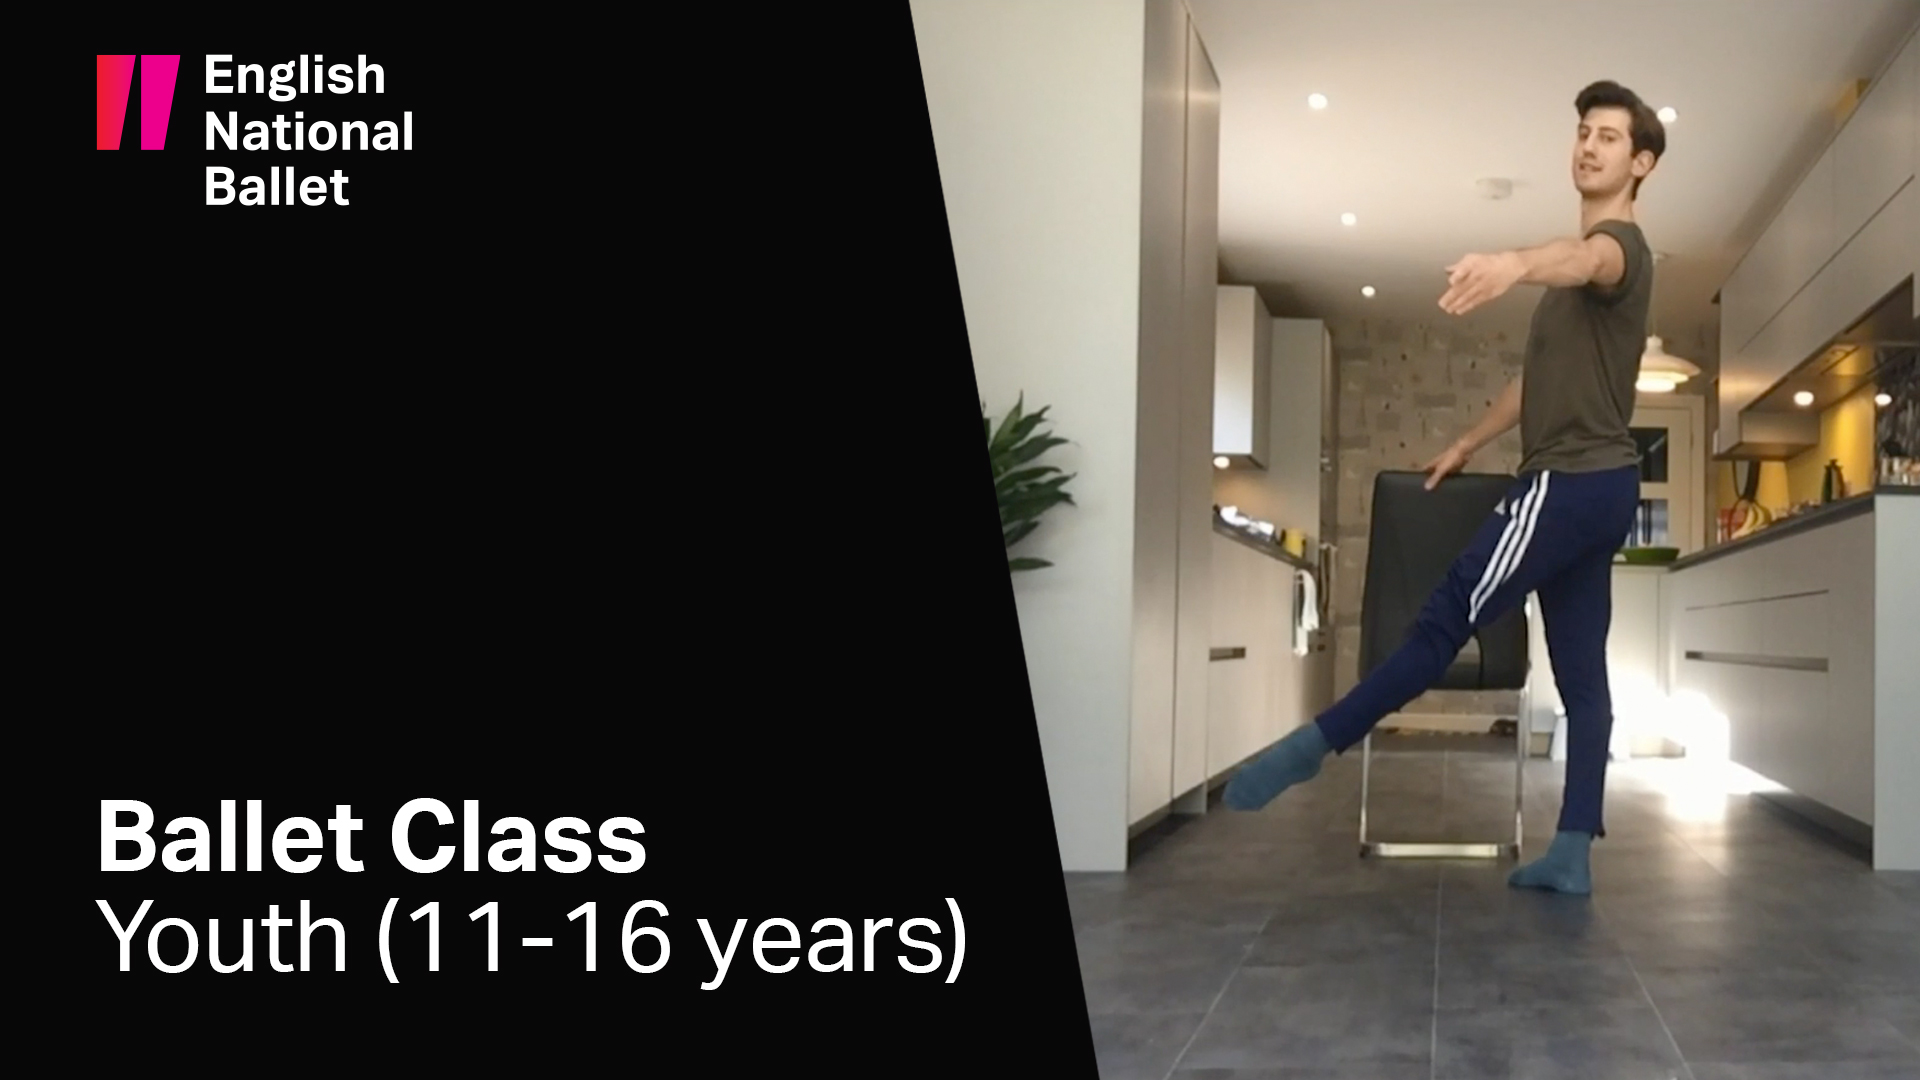 Youth Ballet Class (11-16 Years) | English National Ballet